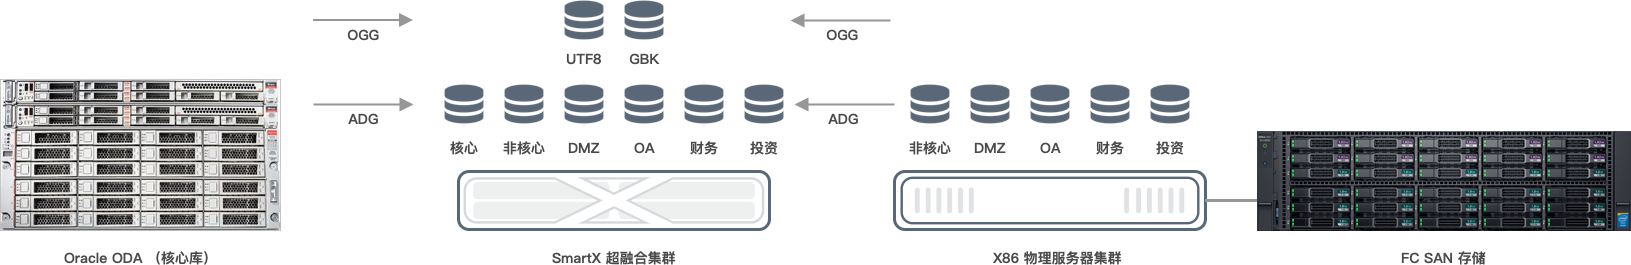 hci-data-base4.png